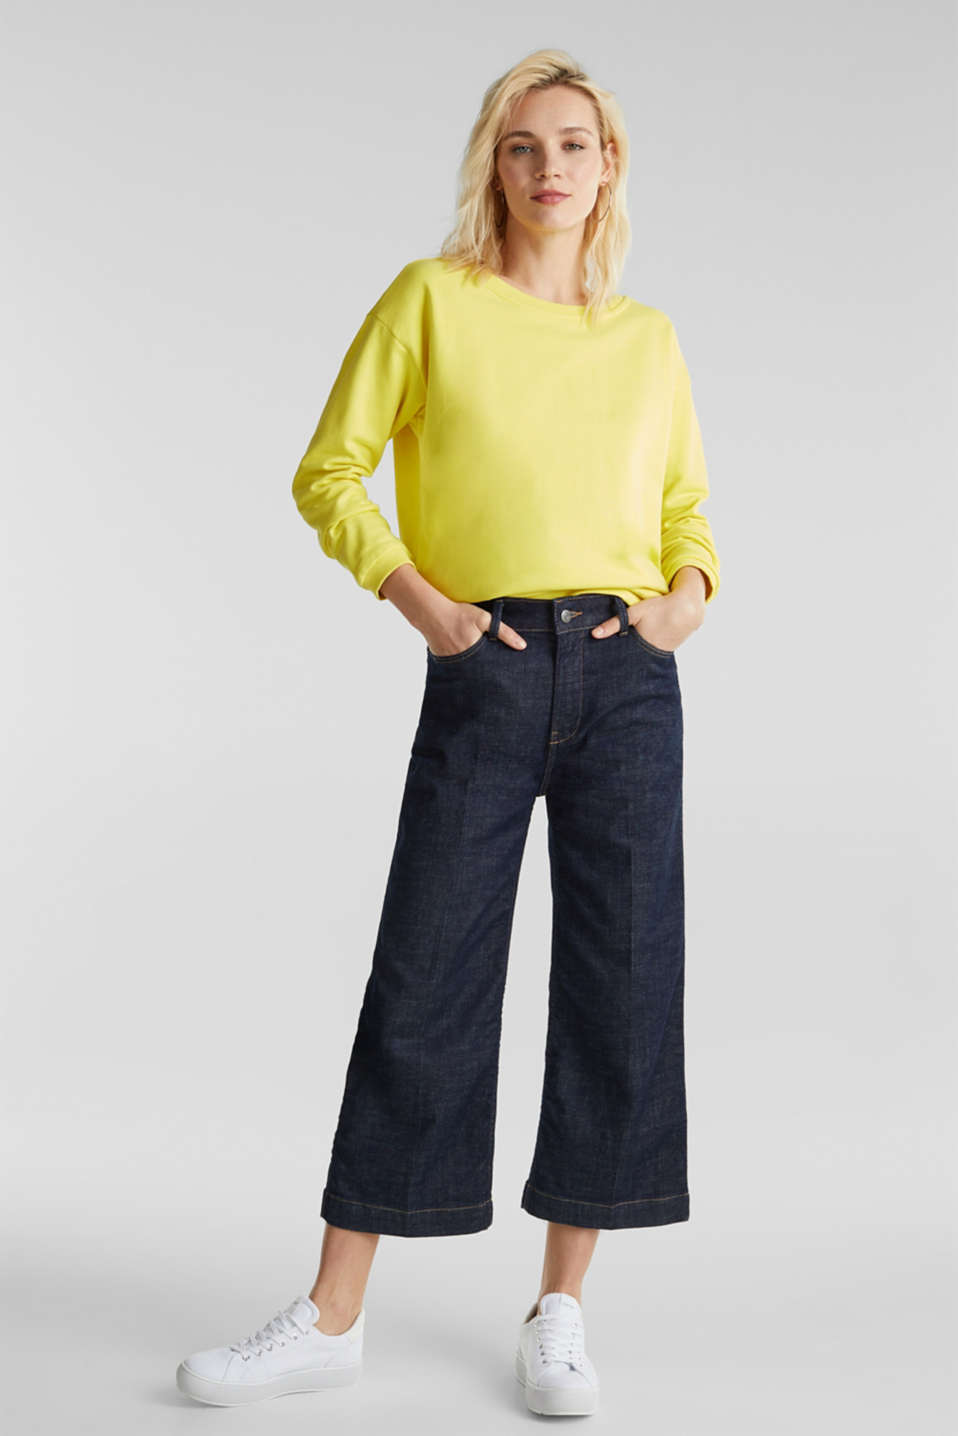 Sweatshirt with a back neckline, BRIGHT YELLOW, detail image number 1